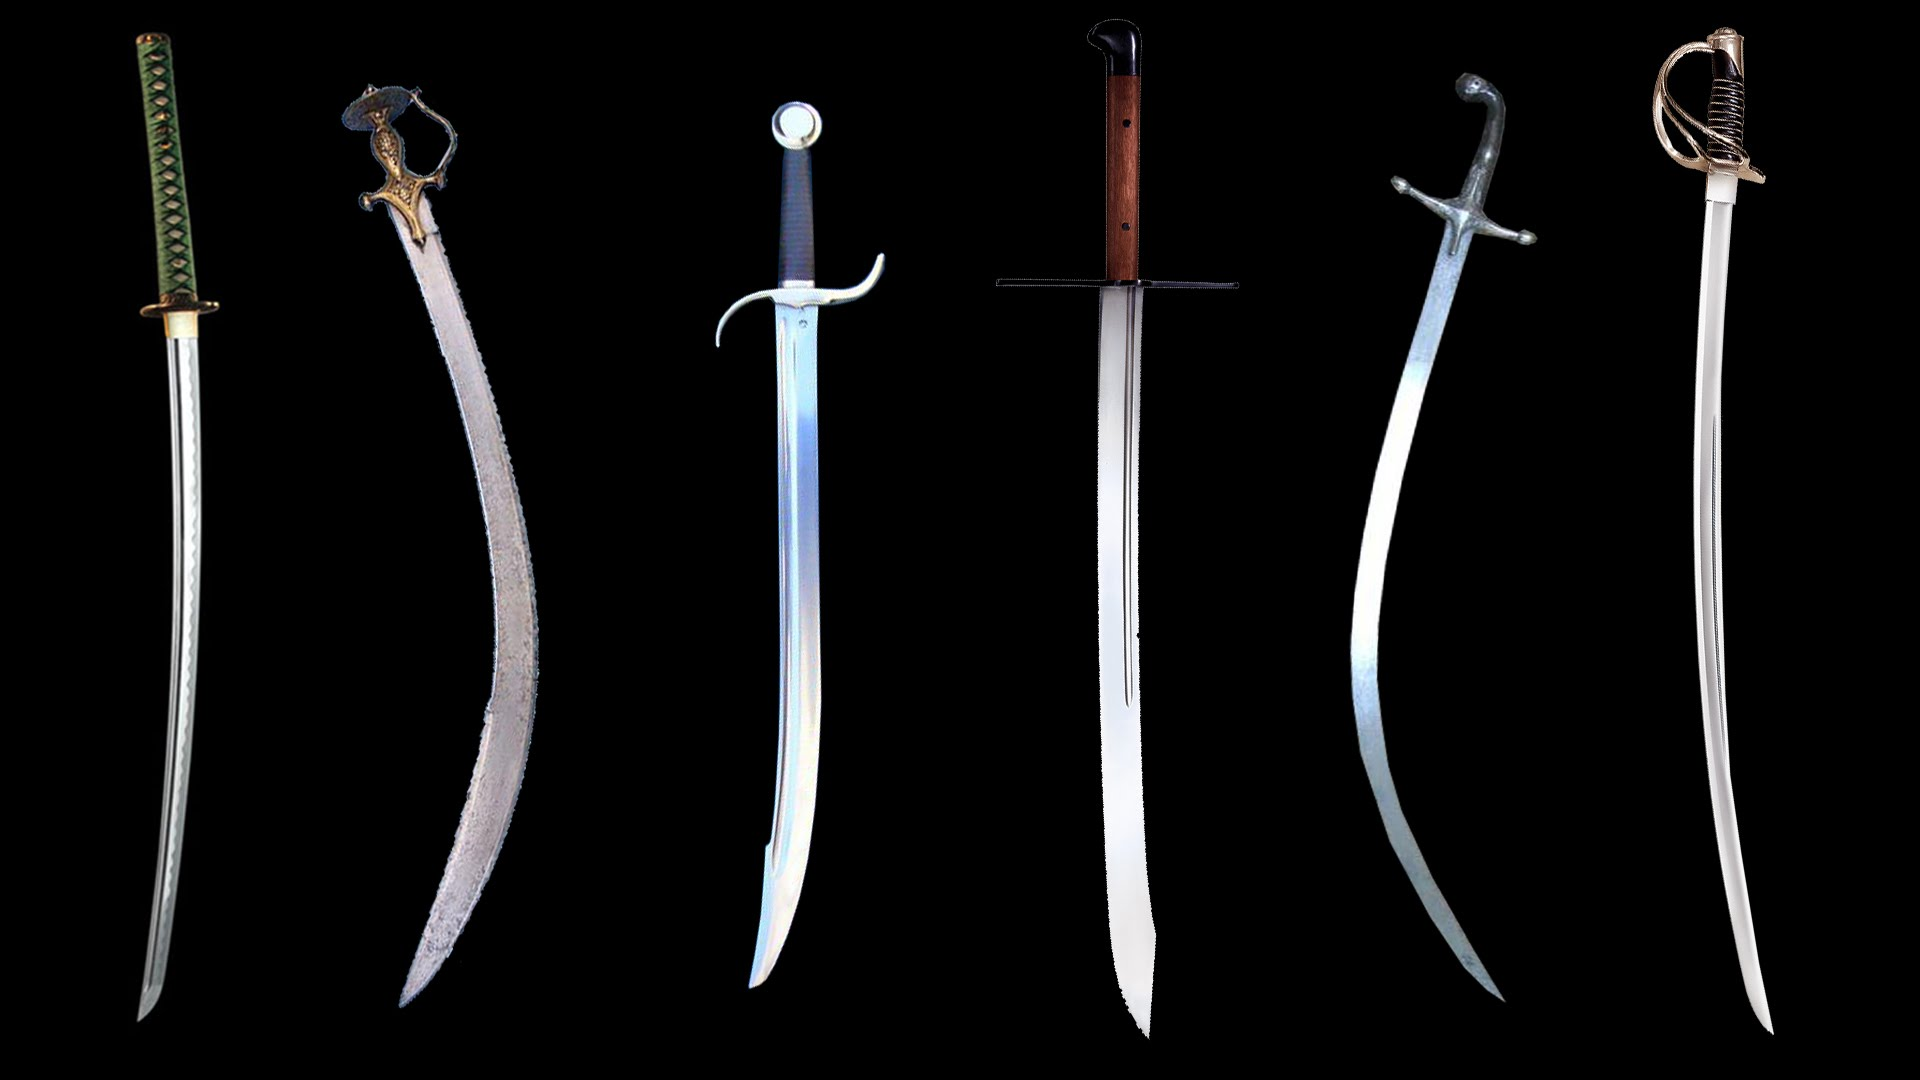 Cutting sword examples